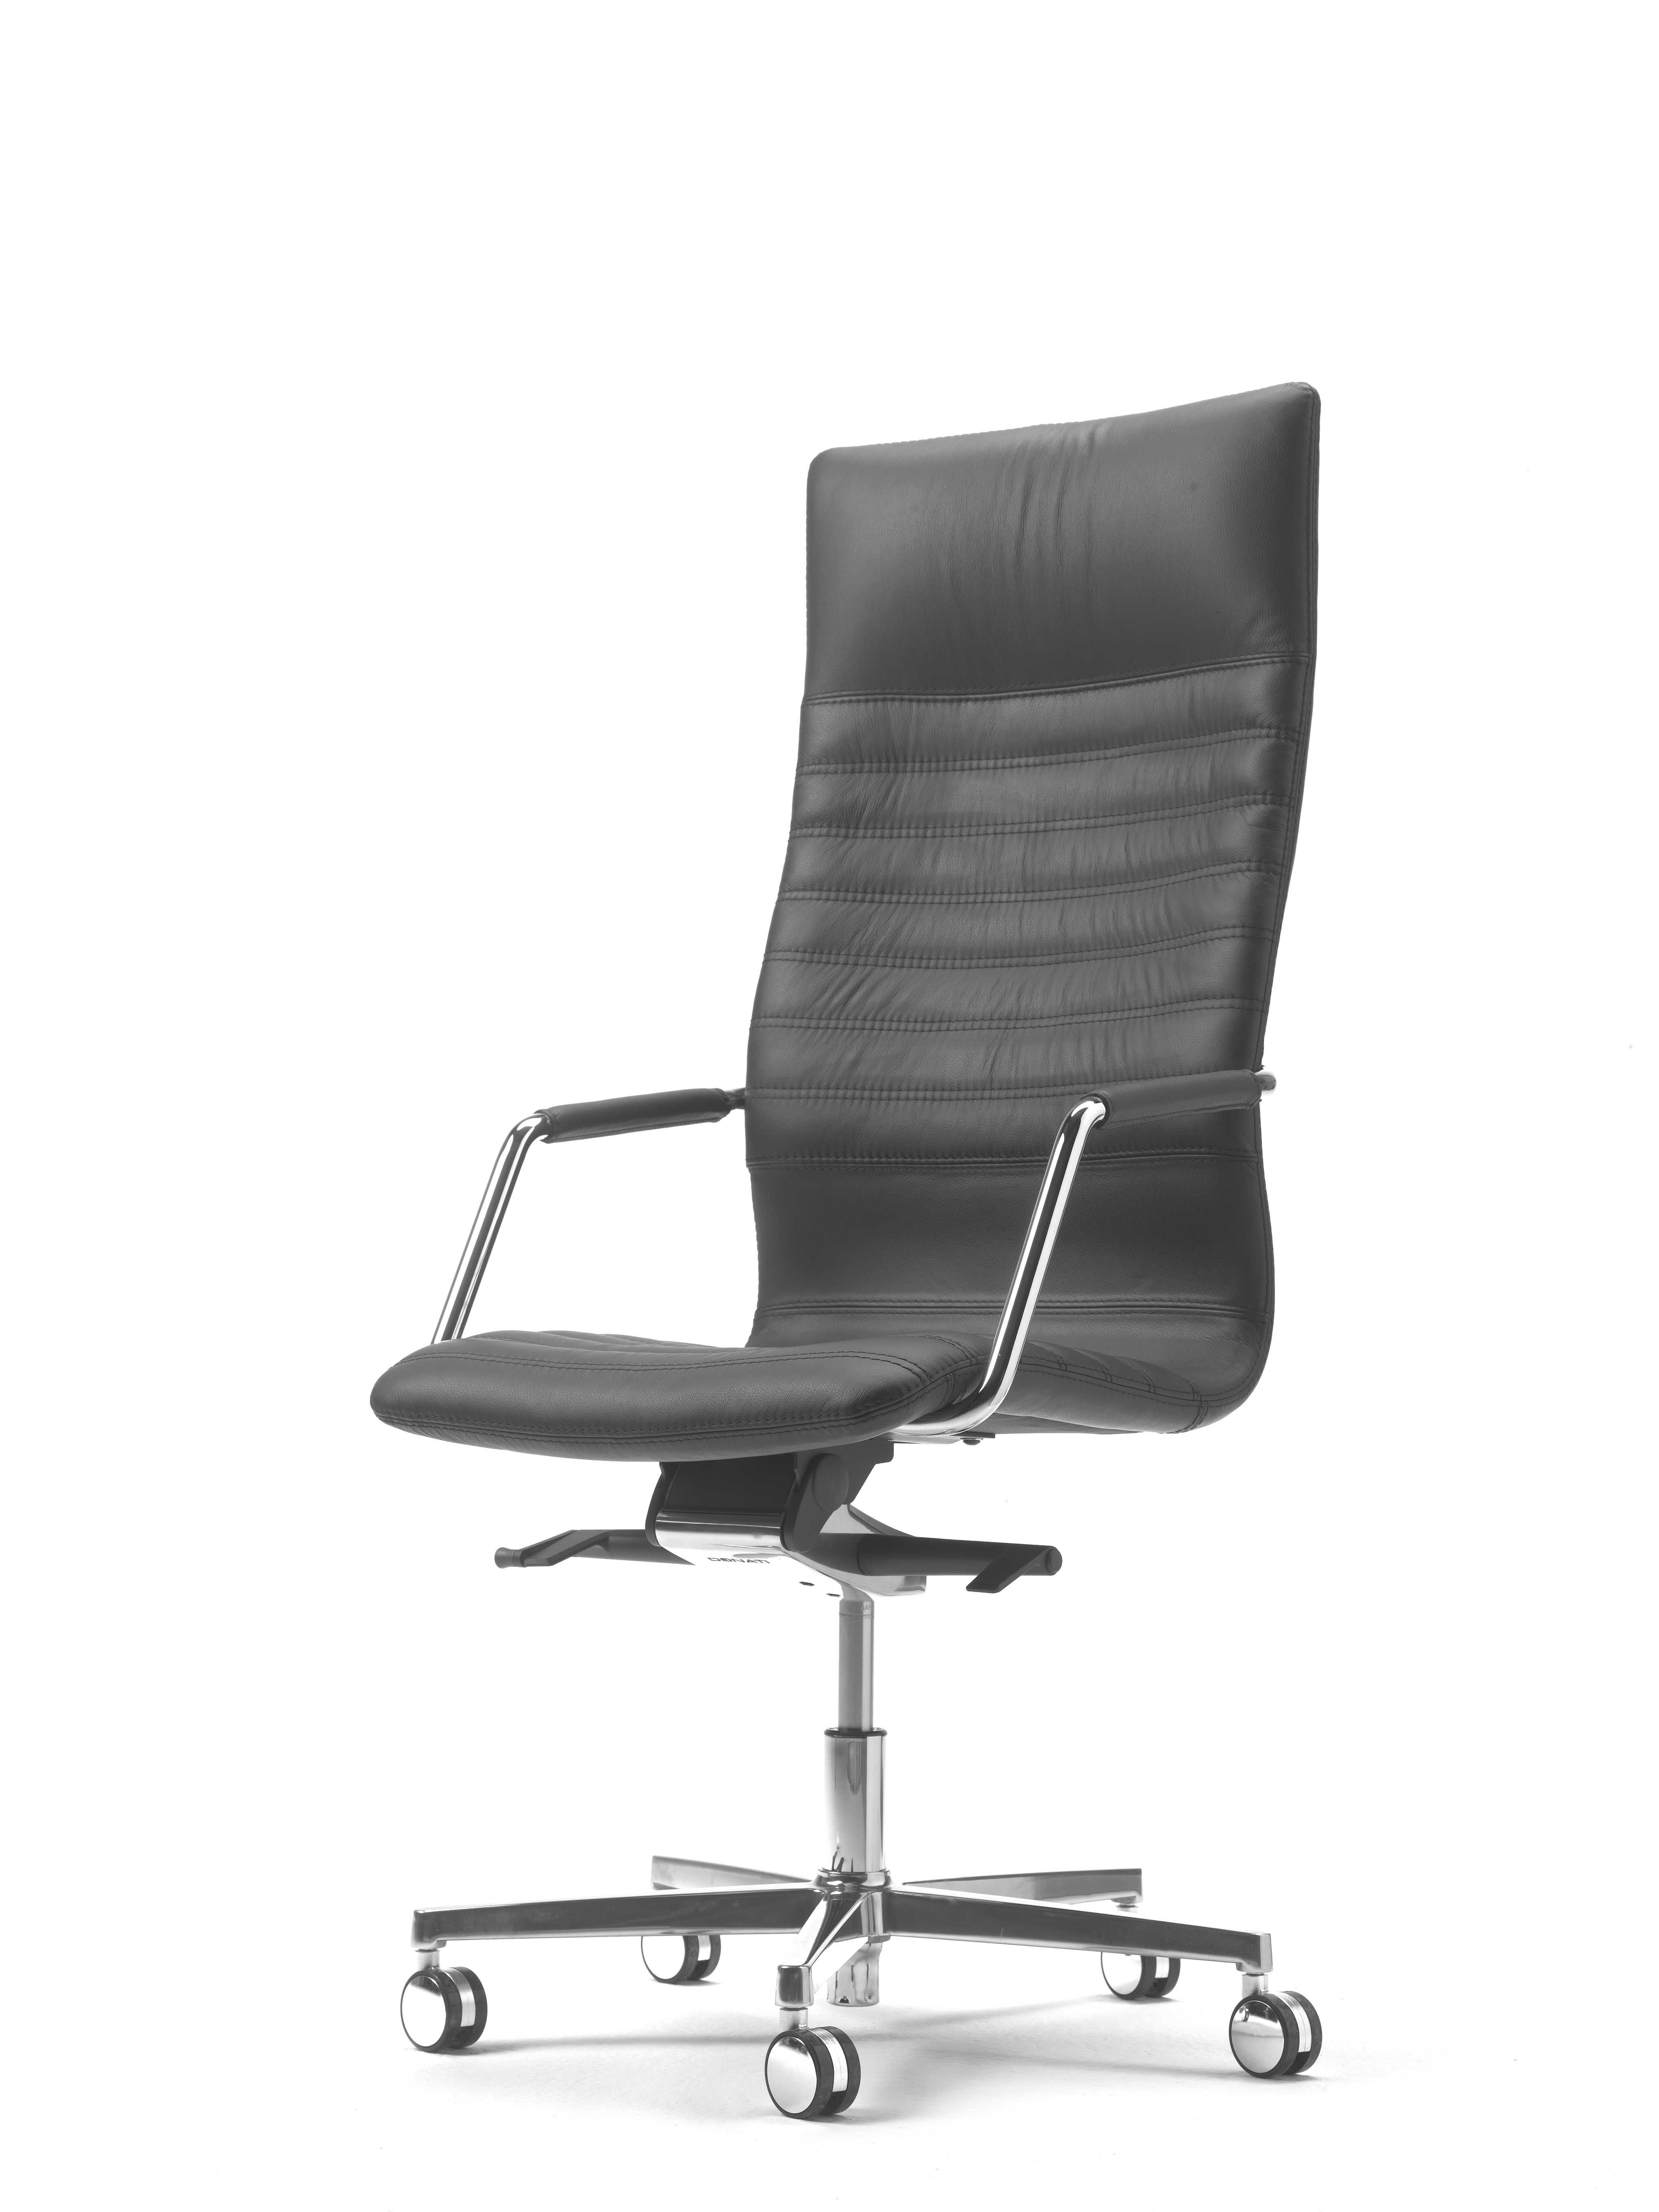 Management chair tempo from Sitia srl designed by Pergentino